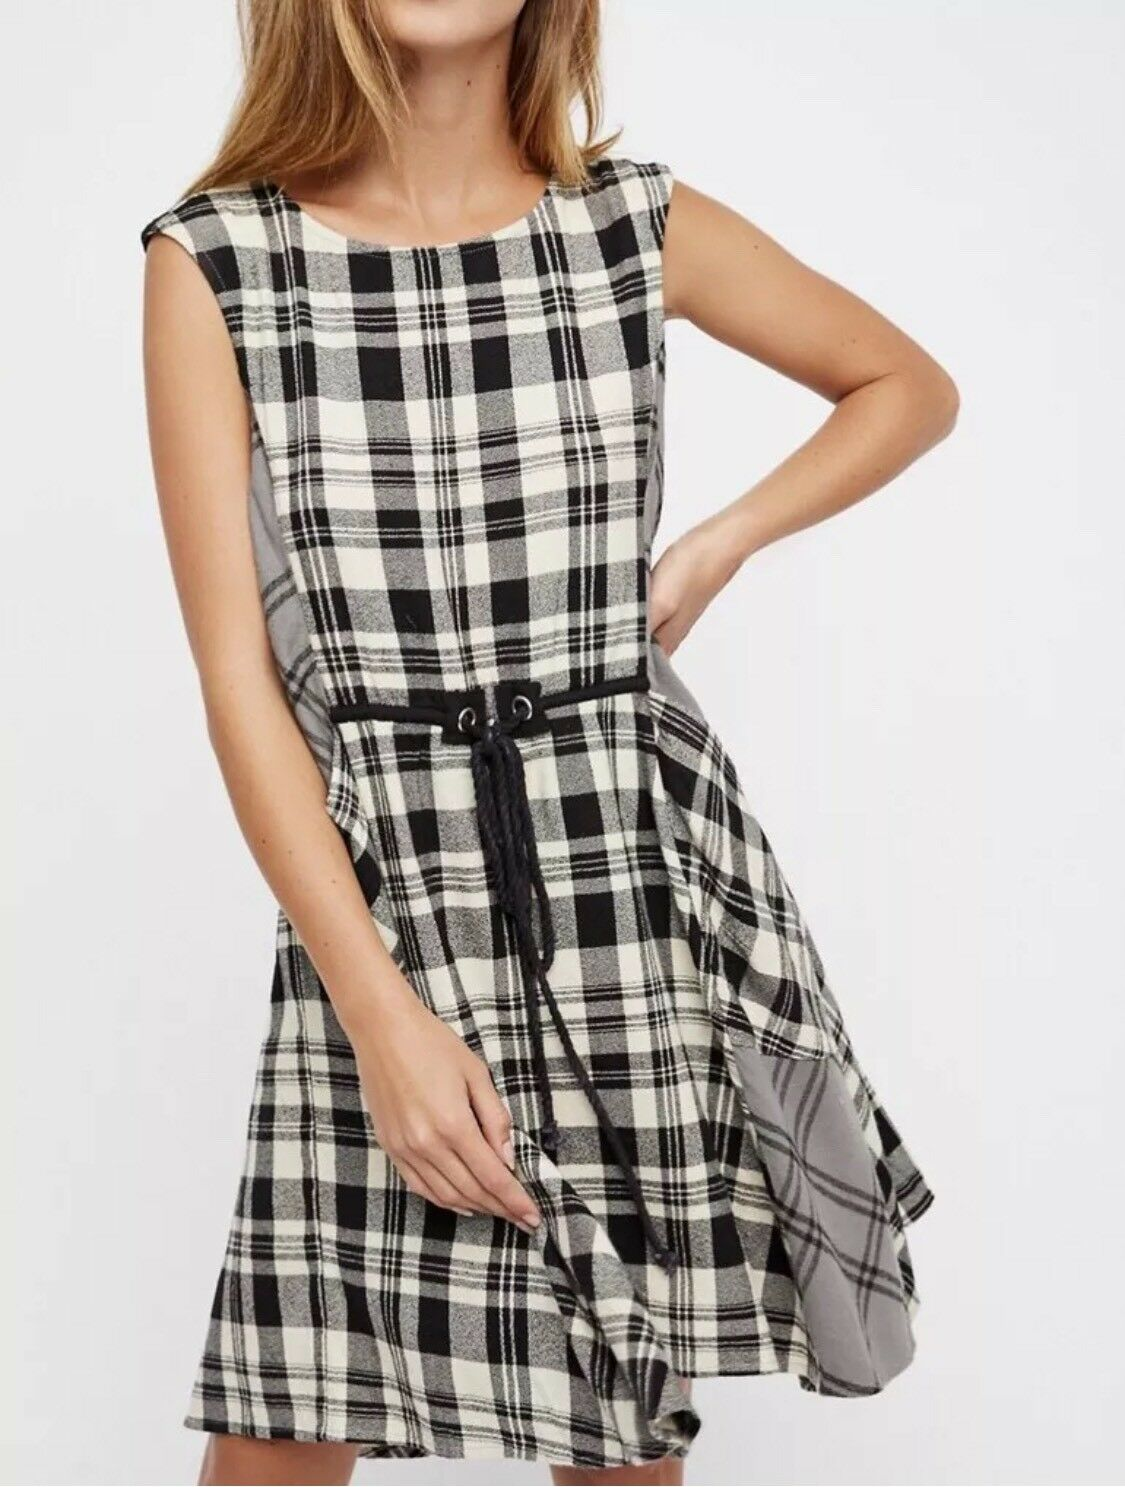 NWT FREE PEOPLE Size M  LAND LINES LINES LINES MIXED PLAID MINI DRESS TUNIC  148 c14d81